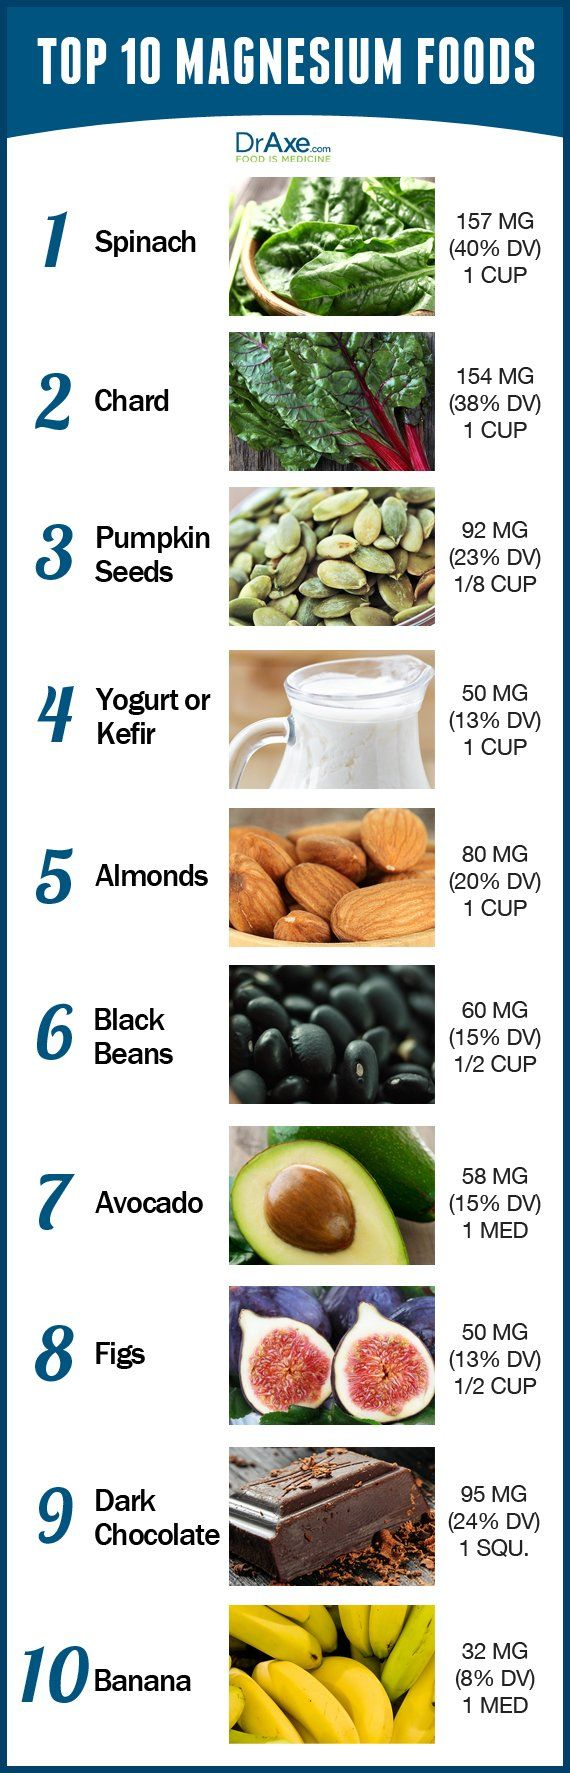 Are You Magnesium Deficient  Top 10 Magnesium Rich Foods You Must Be Eating | http://draxe.com/magnesium-deficient-top-10-magnesium-rich-foods-must-eating/